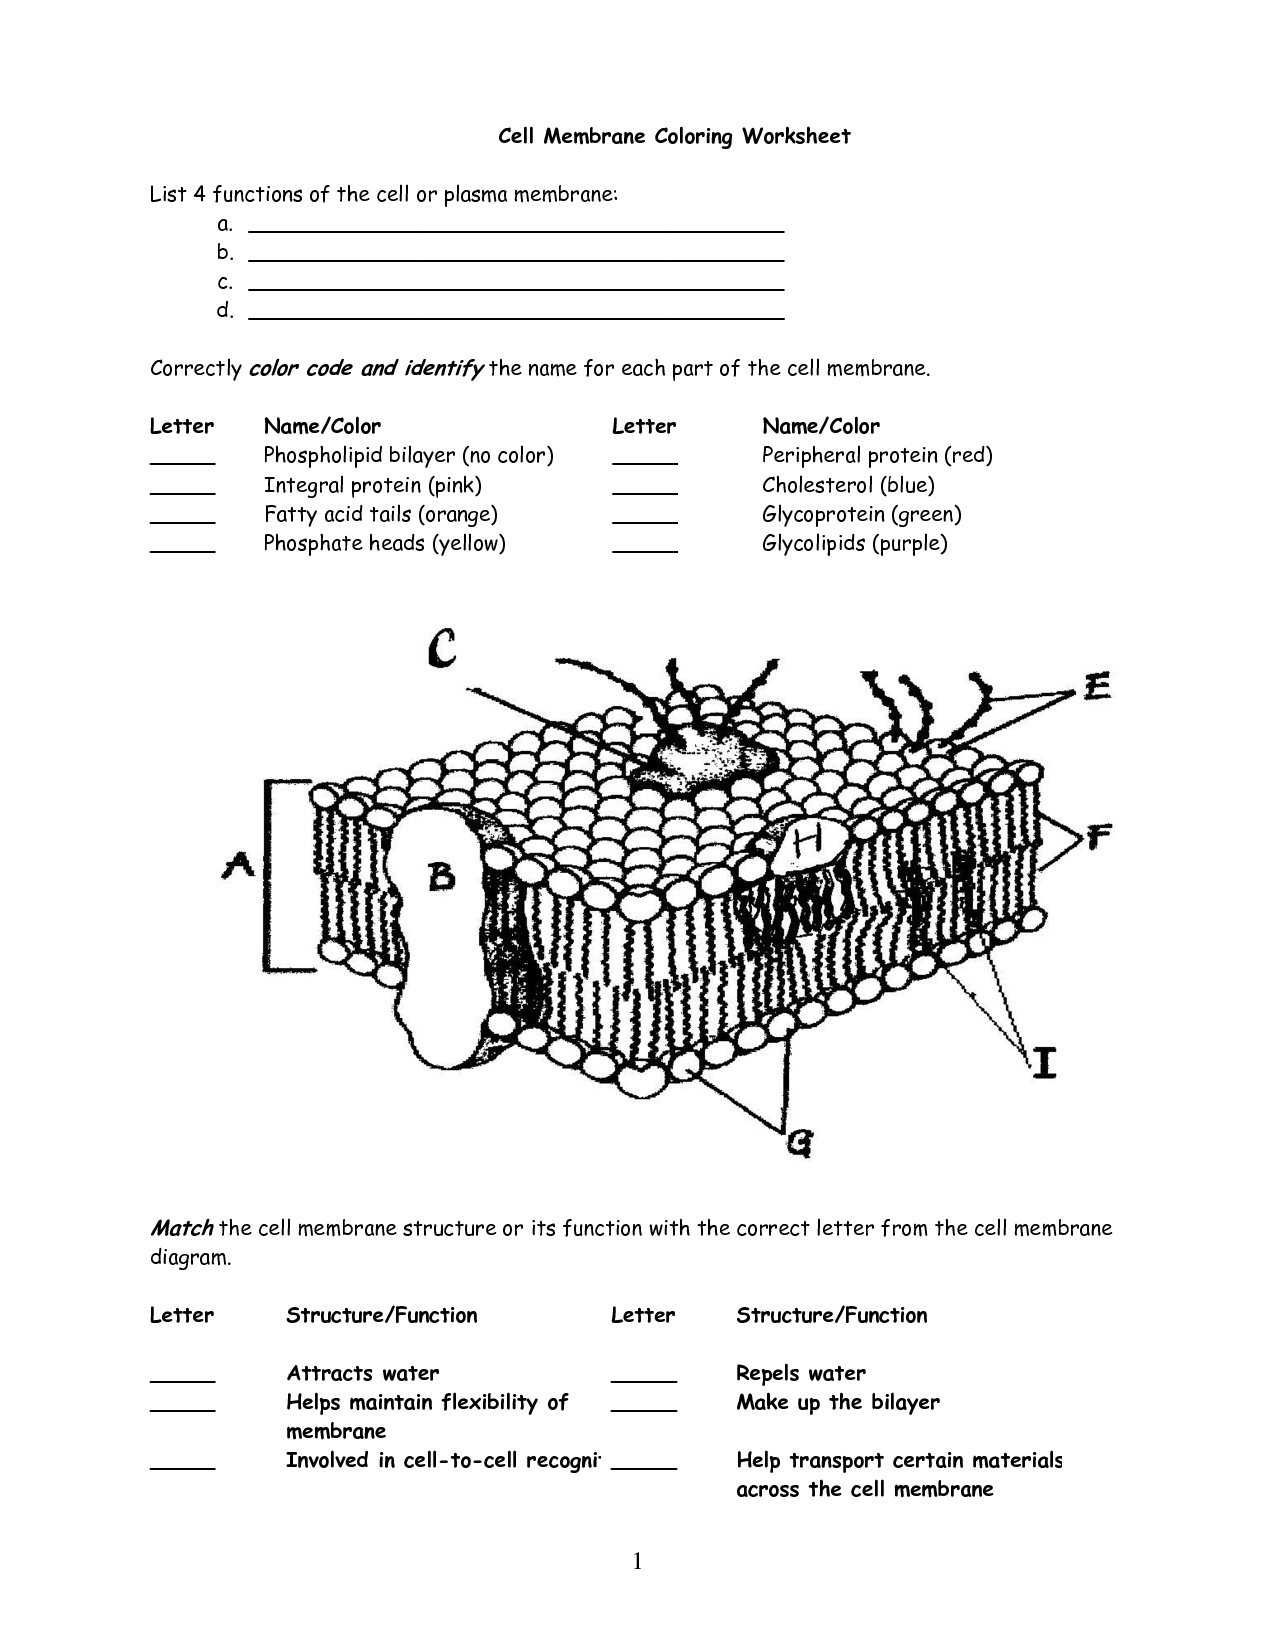 Cell Membrane Worksheet Answers Cell Membrane Worksheet Google As Well As Cell Membrane Coloring Worksheet Answers